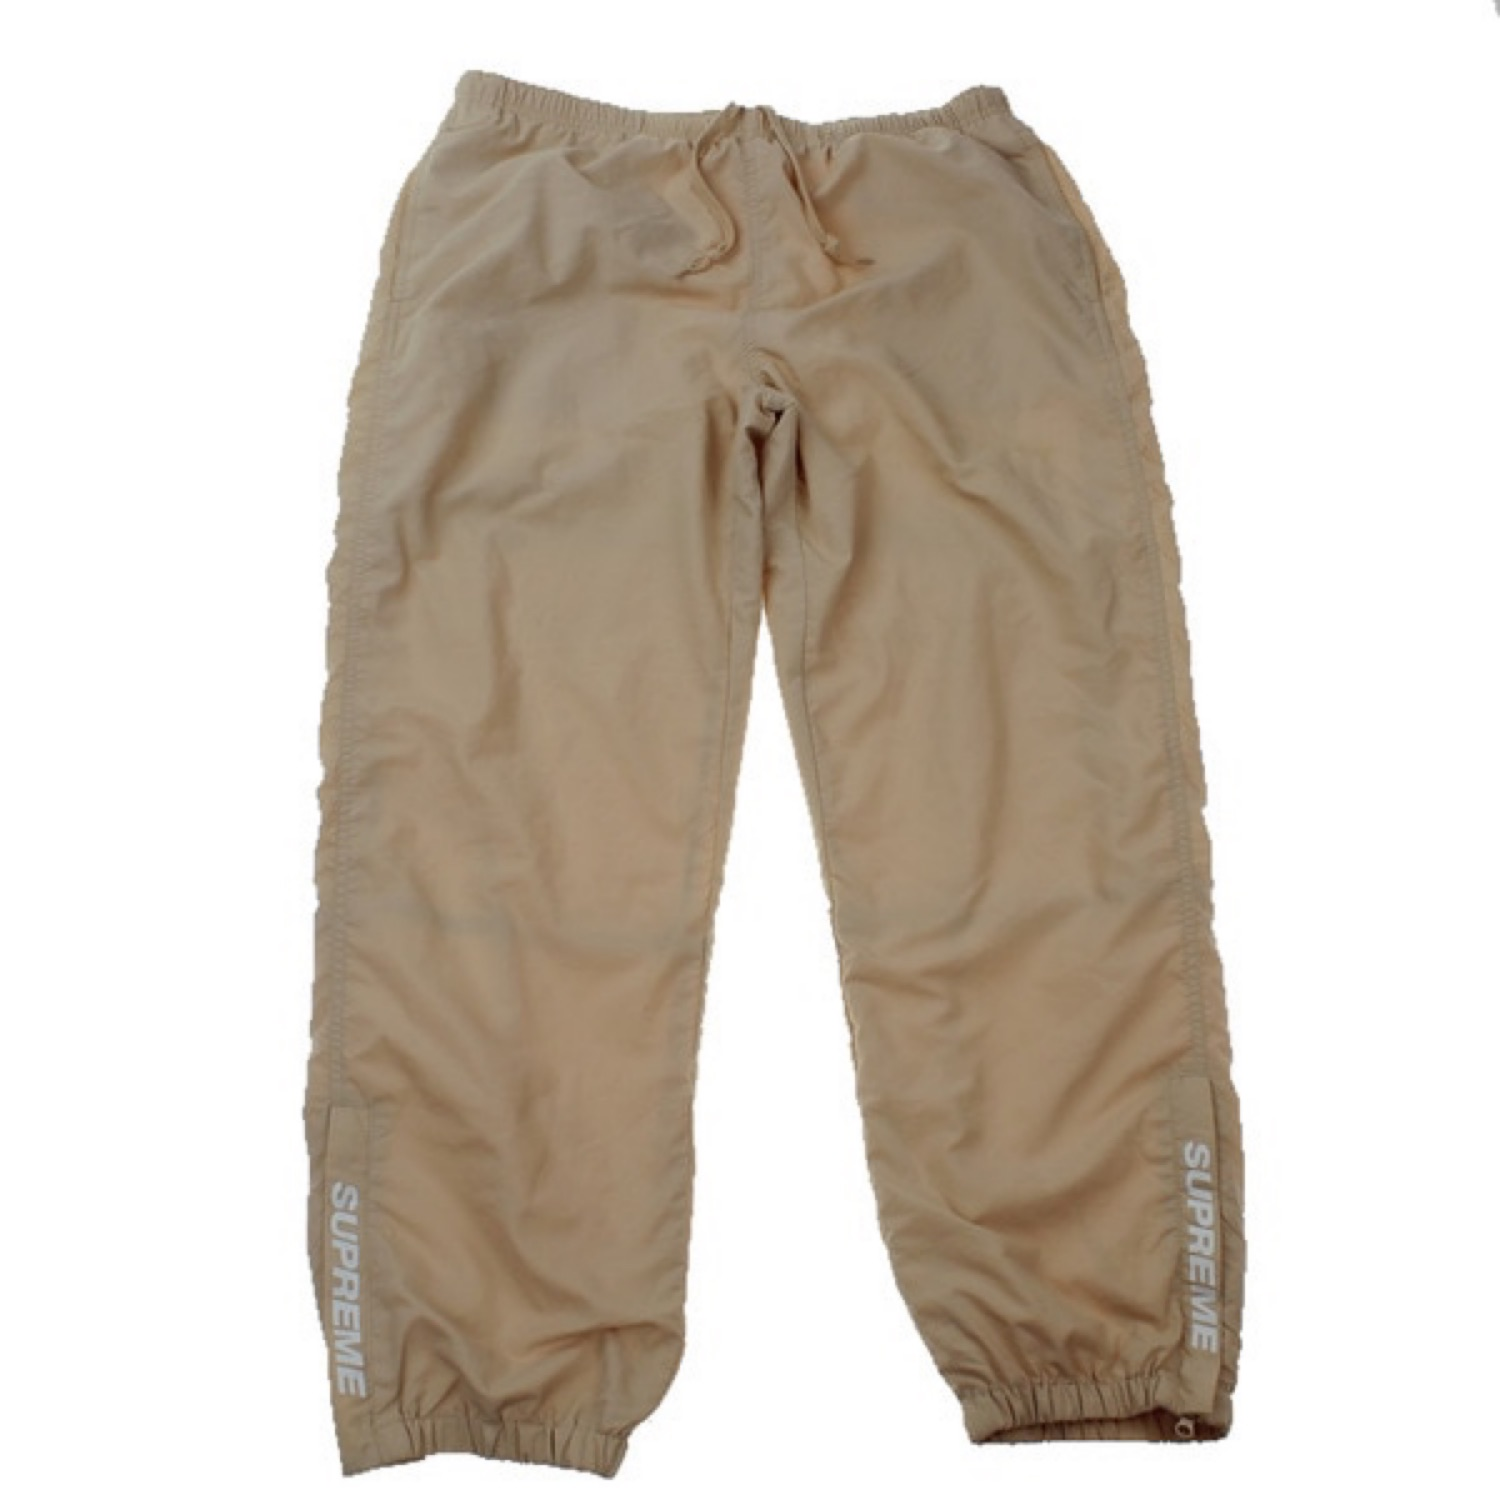 Supreme Beige Warmup Track Pants